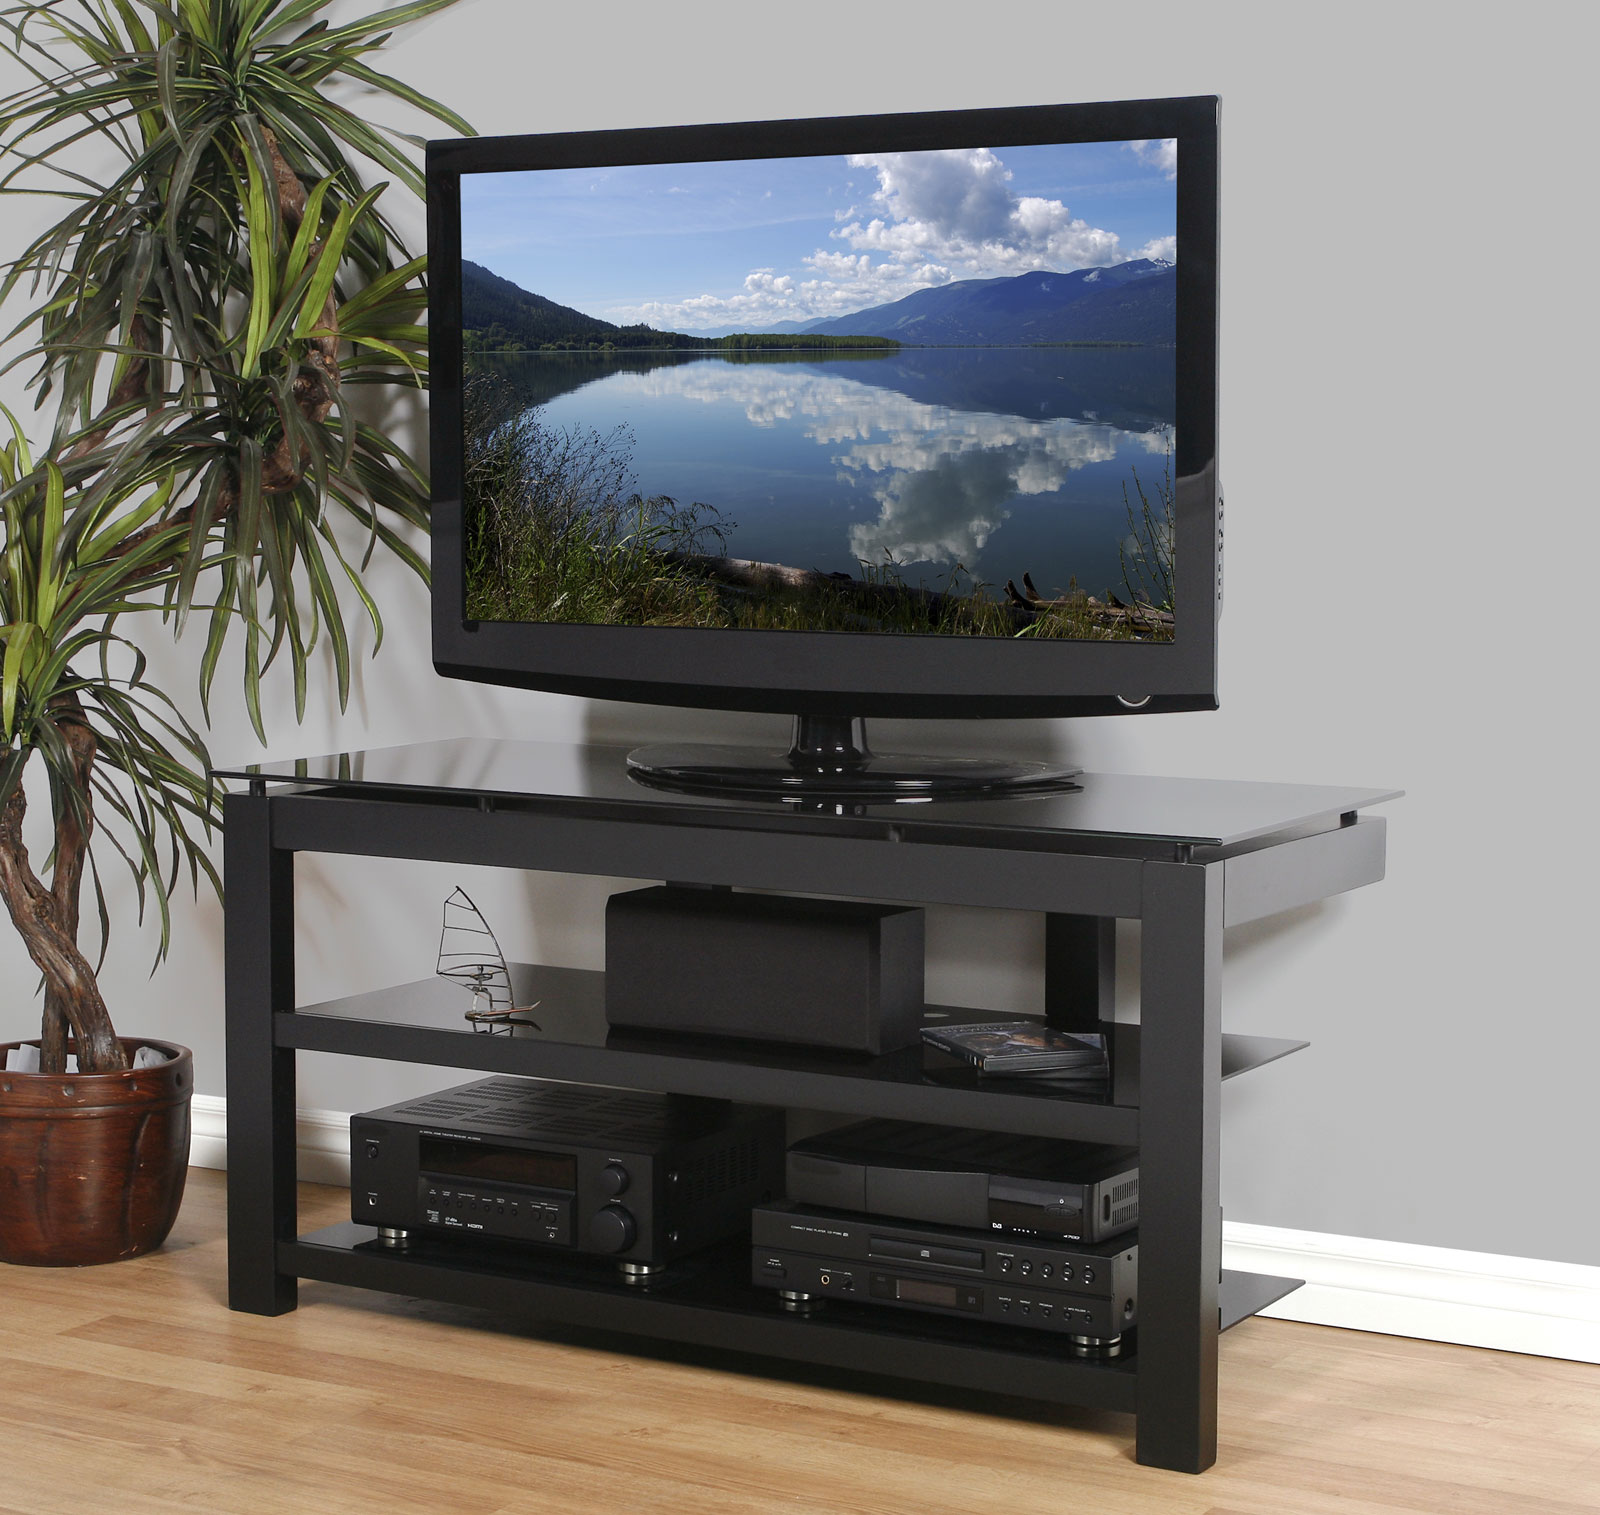 50 Inch Flat Screen TV Stand